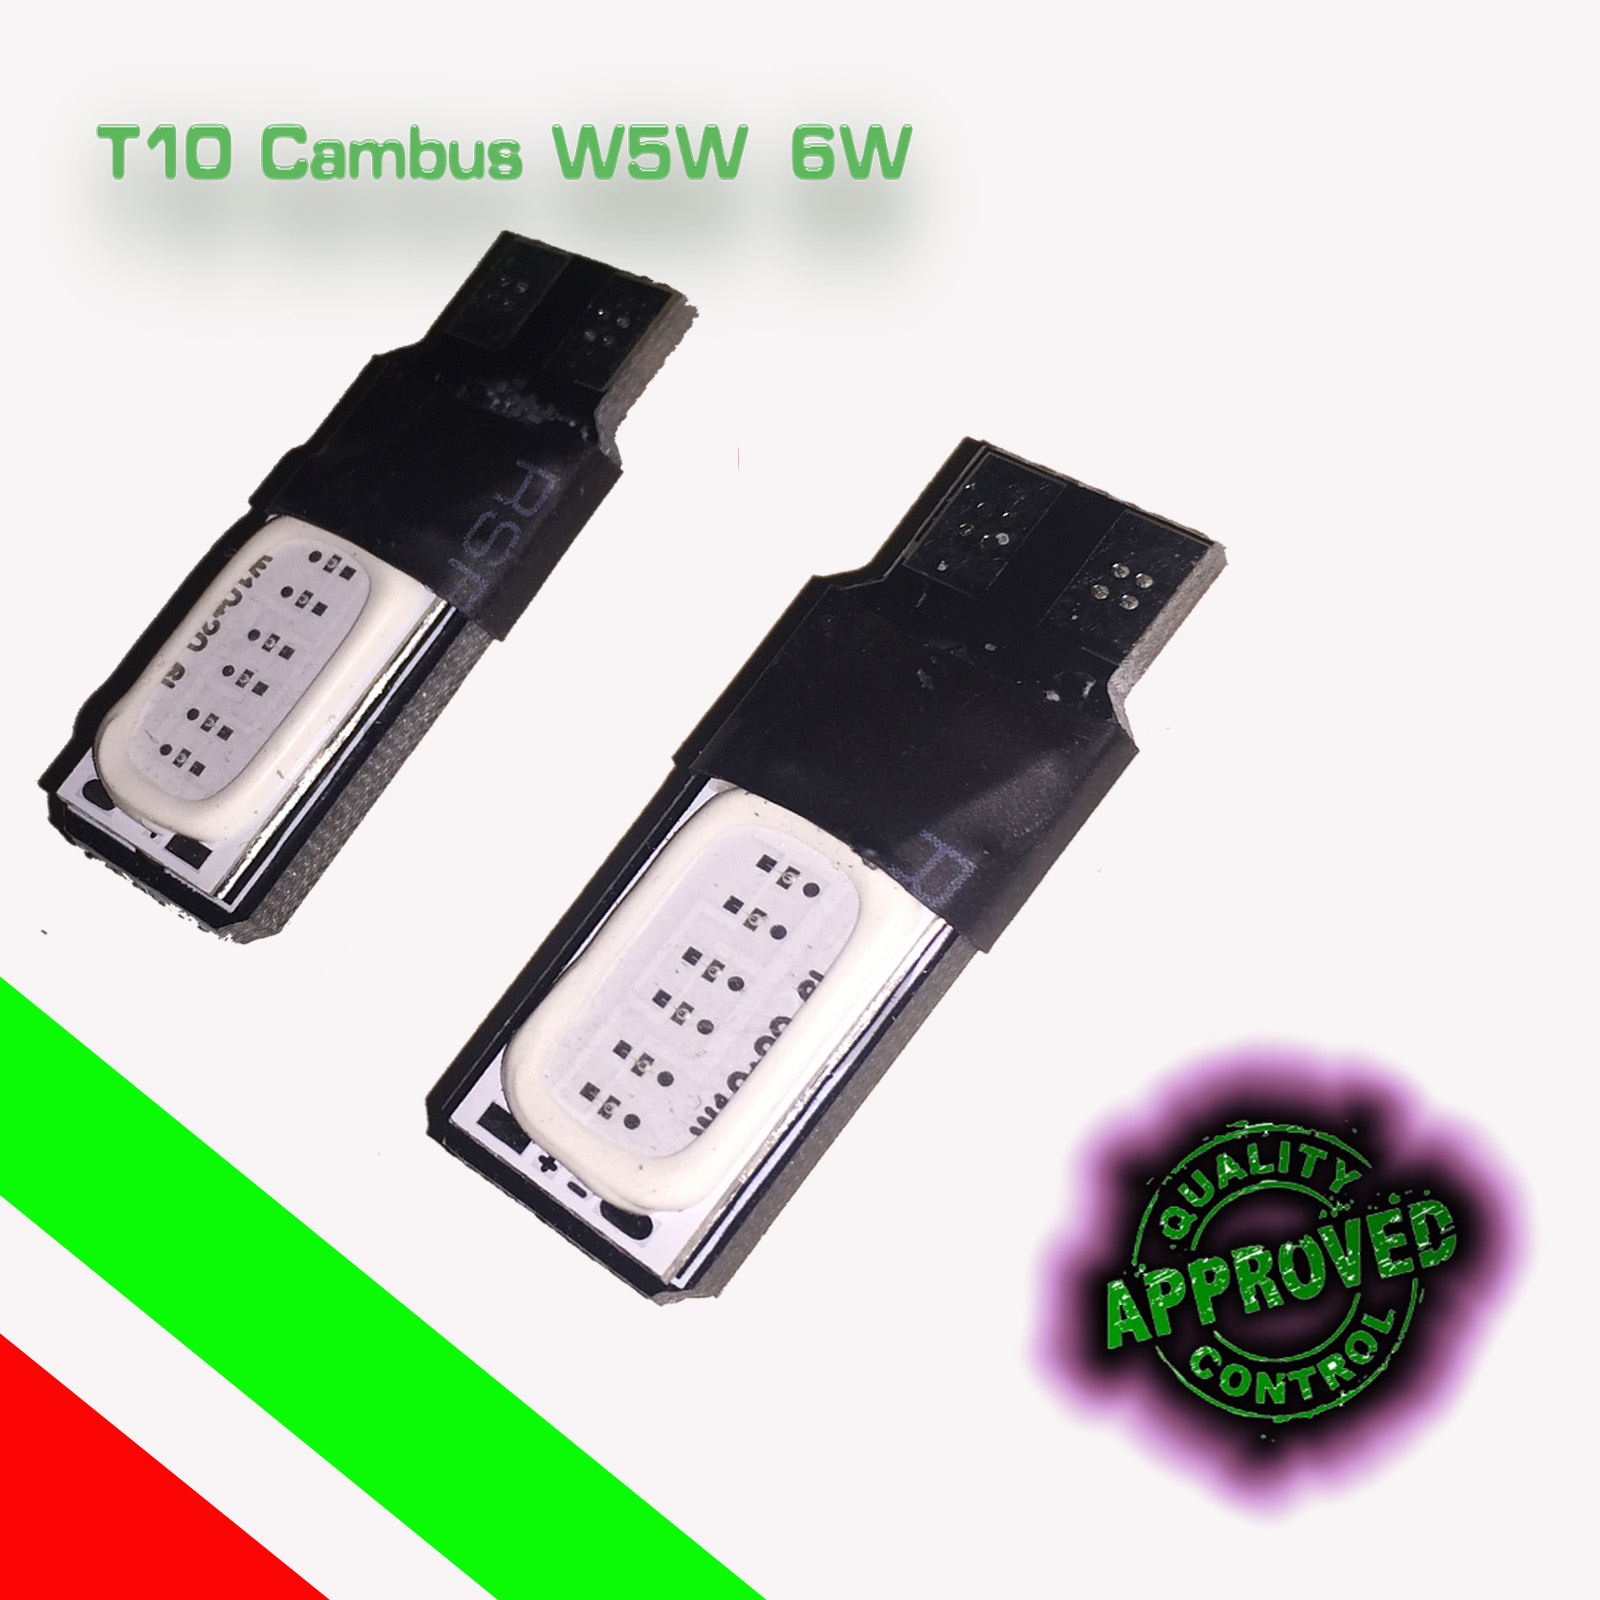 led t10 w5w cambus smd cob new tecno user. Black Bedroom Furniture Sets. Home Design Ideas